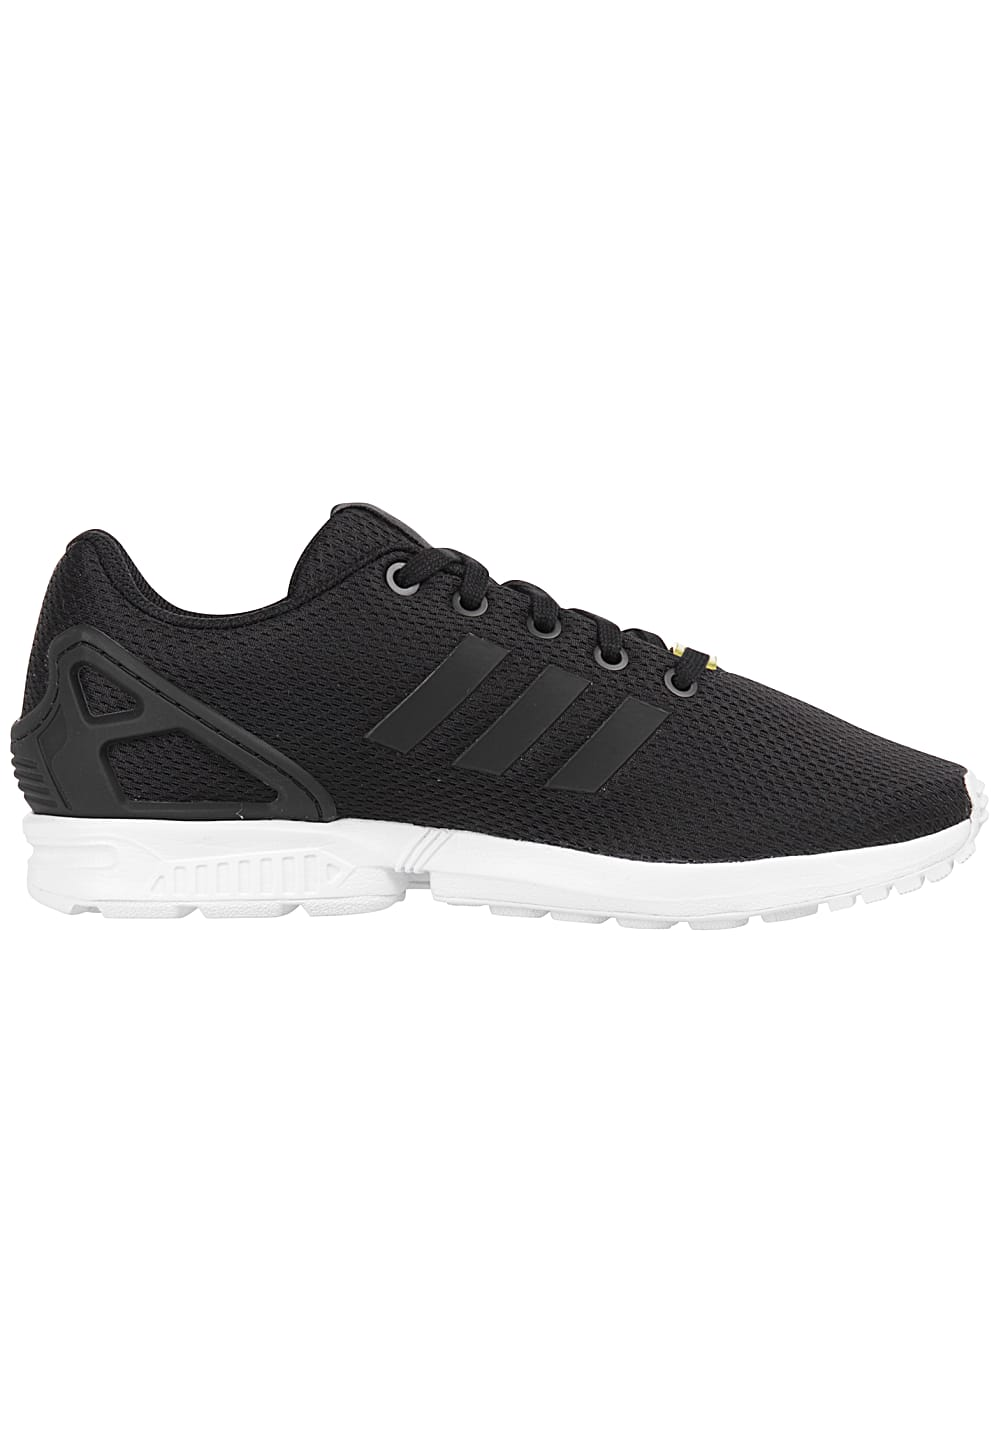 Adidas Originals ZX Flux Damen Gr. 38 (wie neu)